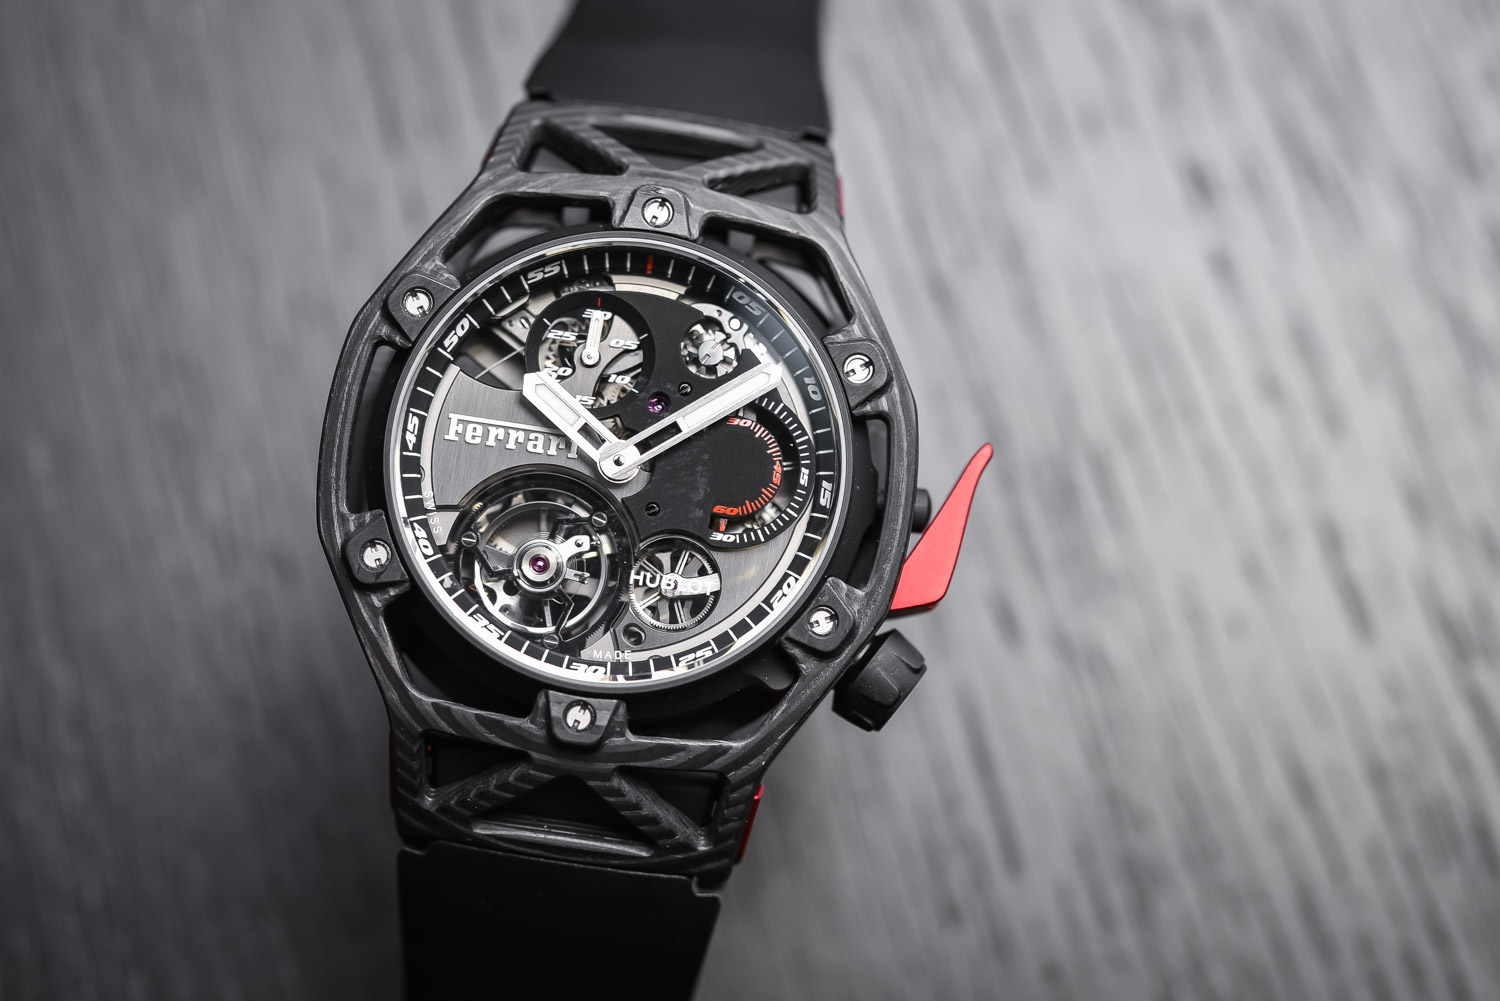 a scuderia formula auto racing at hublot track horology work and photography silverstone automotive lifestyle the watch anish race visit watches luxury one ferrari watchanish